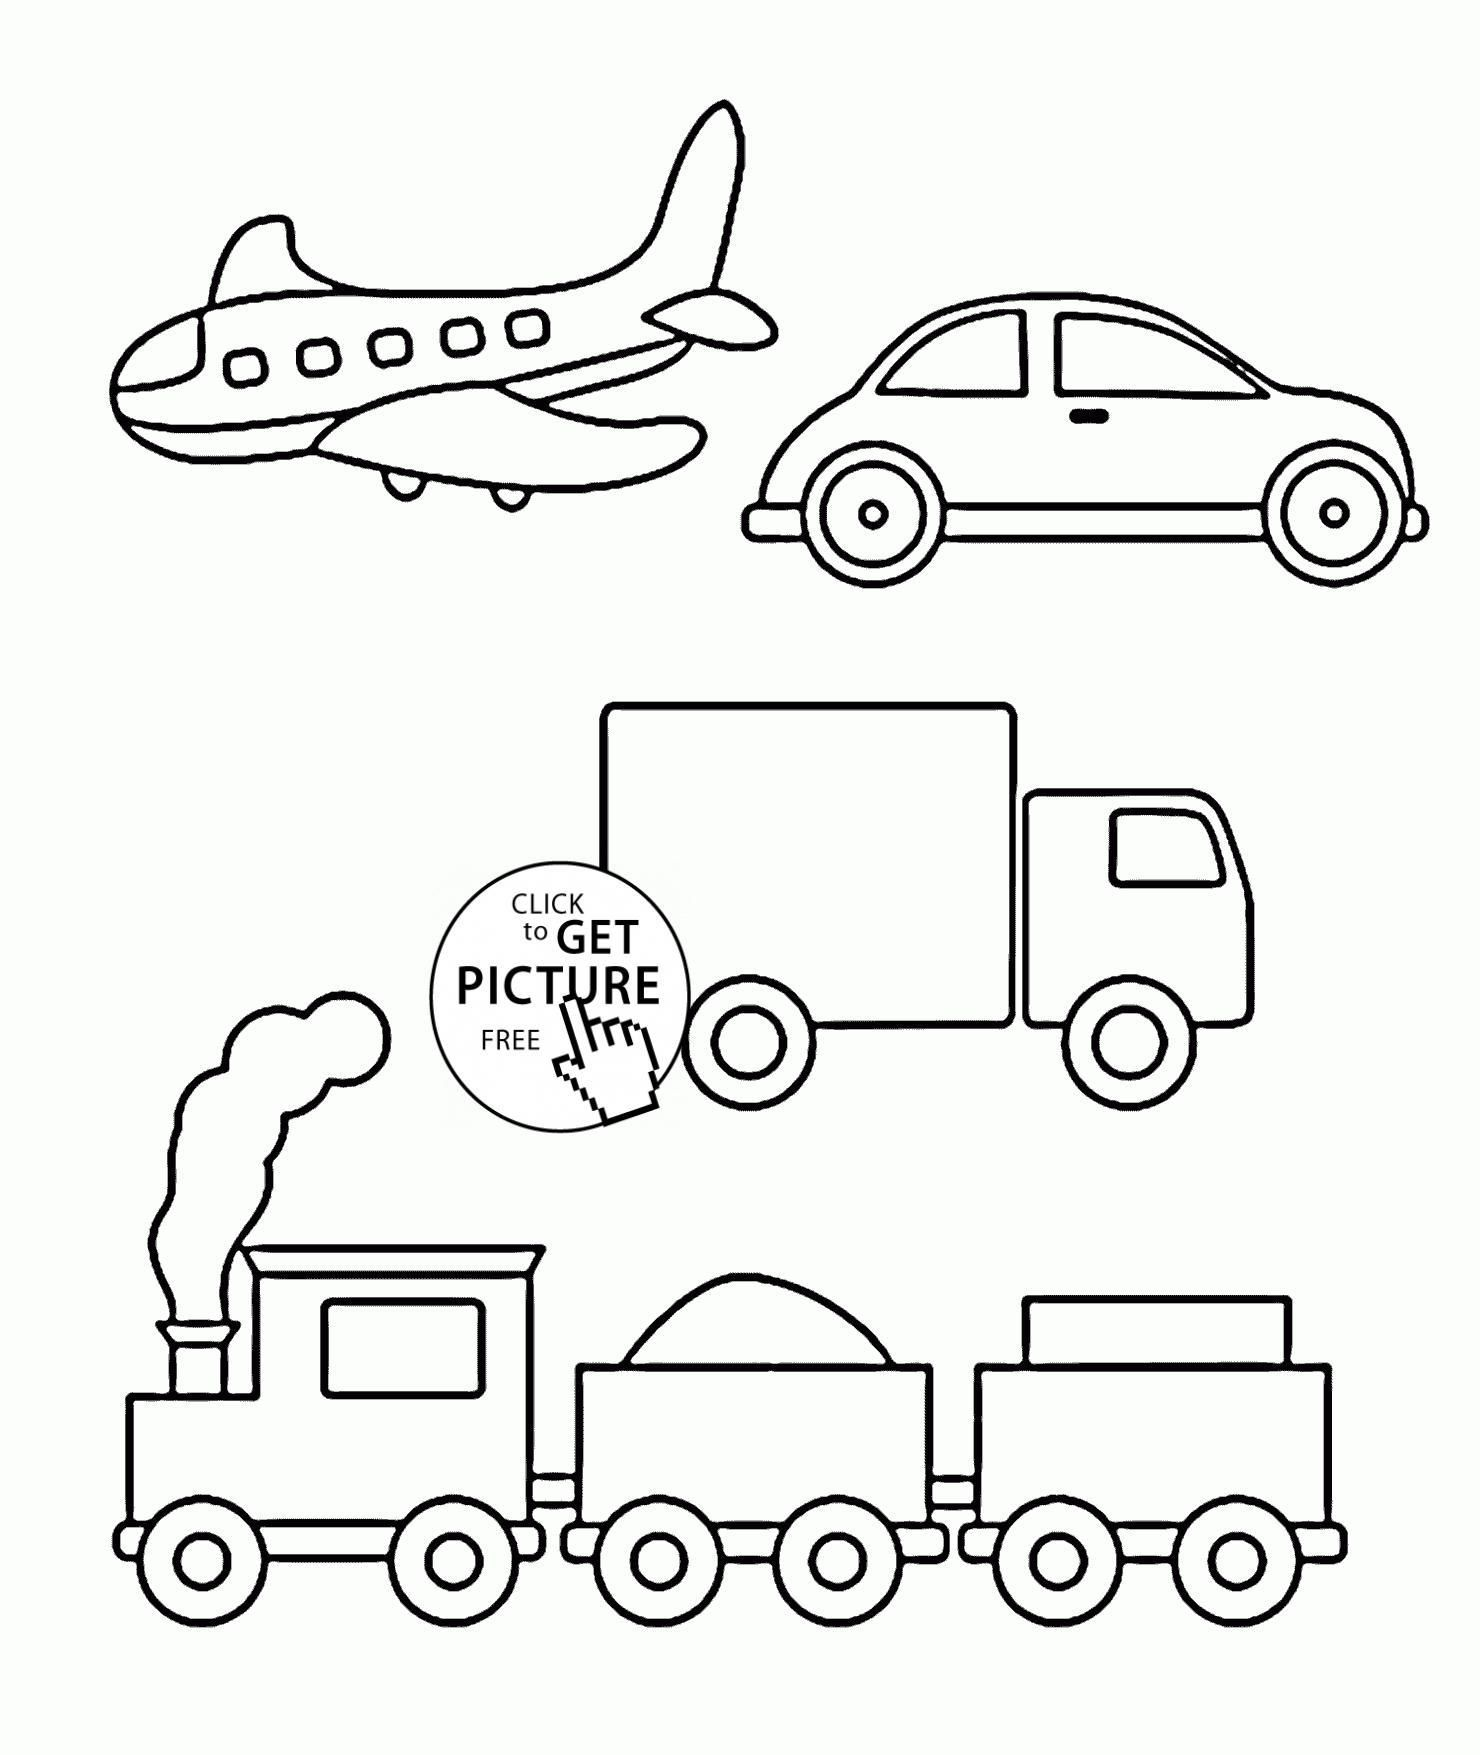 38 Simple Coloring Pages To Print In 2020 Easy Coloring Pages Tractor Coloring Pages Cars Coloring Pages